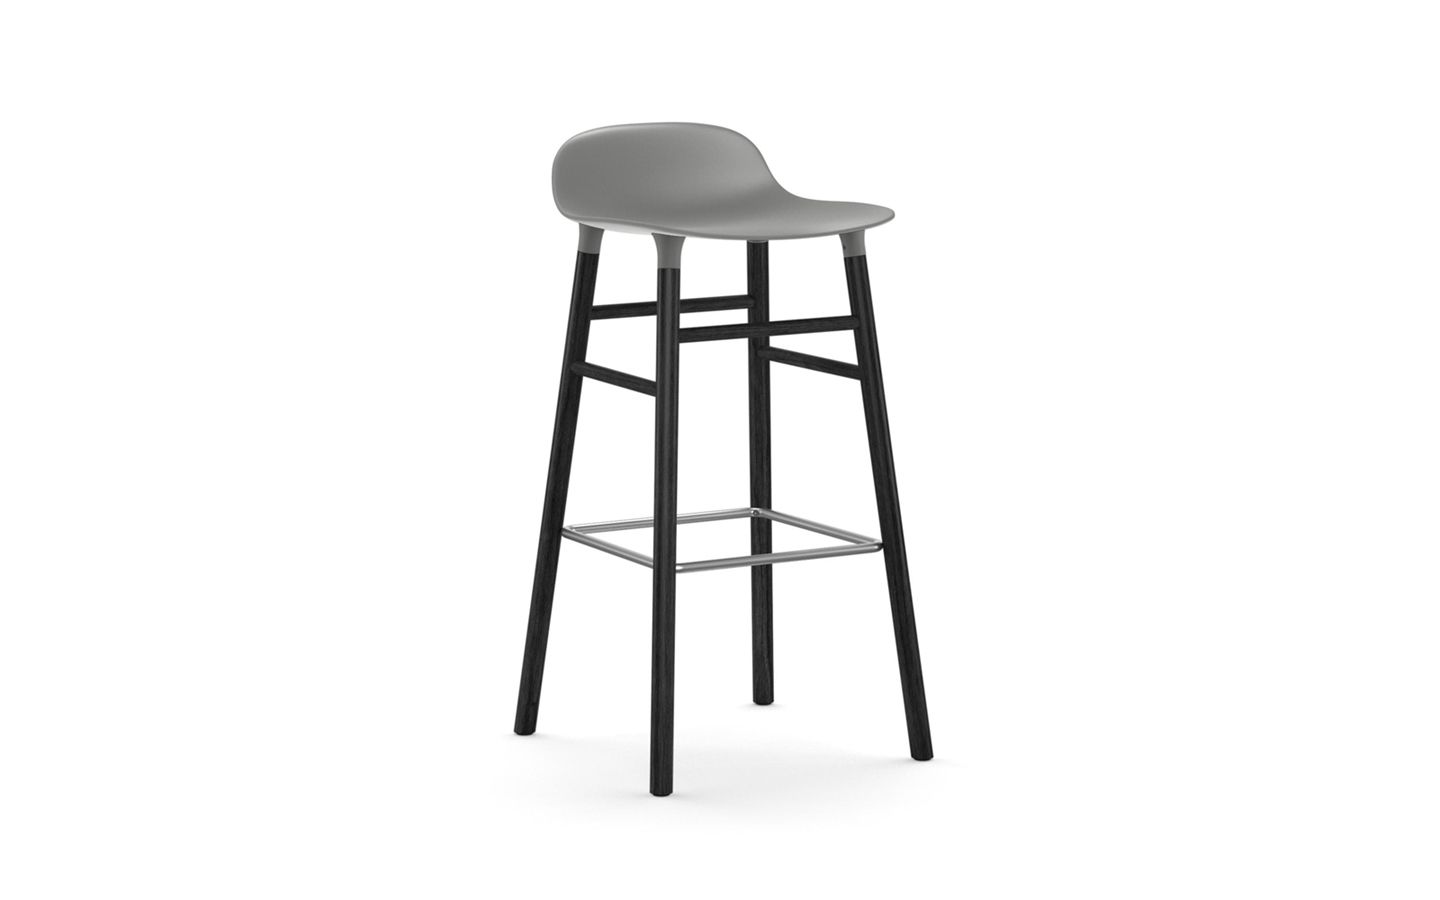 Cool Form Barstool Molded Plastic Shell Chair With Black Legs Lamtechconsult Wood Chair Design Ideas Lamtechconsultcom